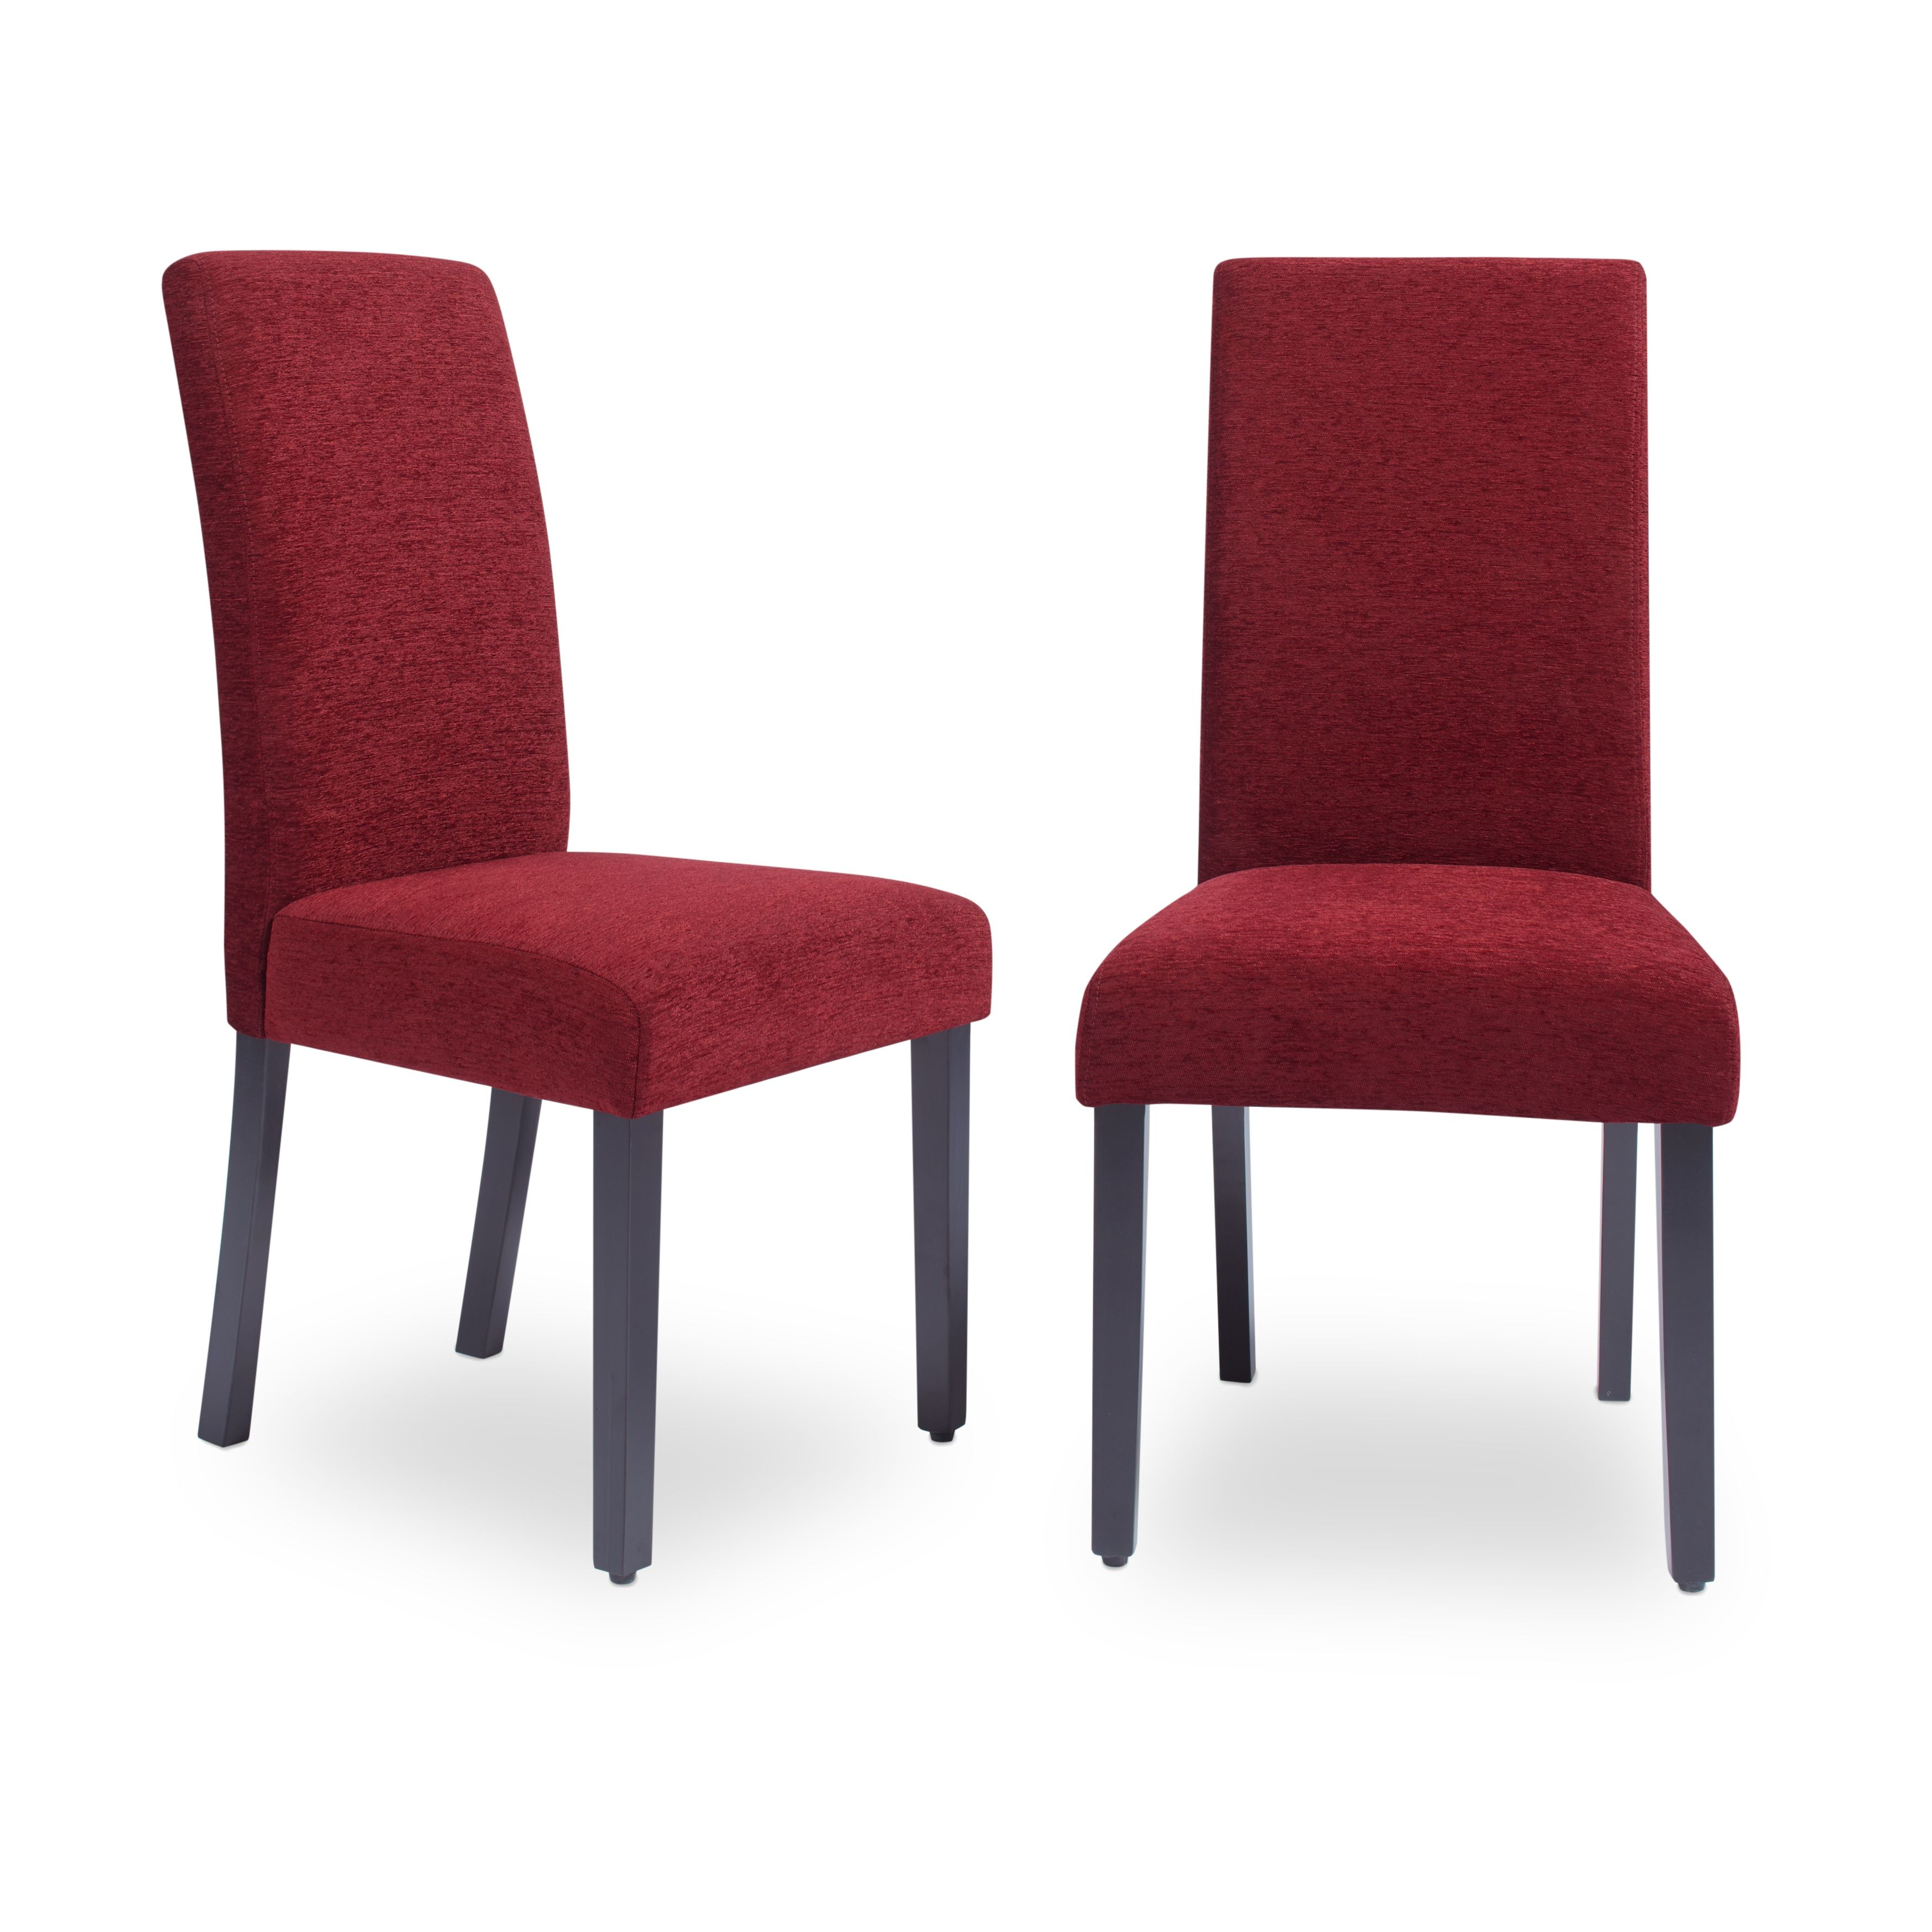 Red Upholstered Dining Chairs Aprilia Upholstered Dining Chairs Set Of 2 Dark Red Monsoon